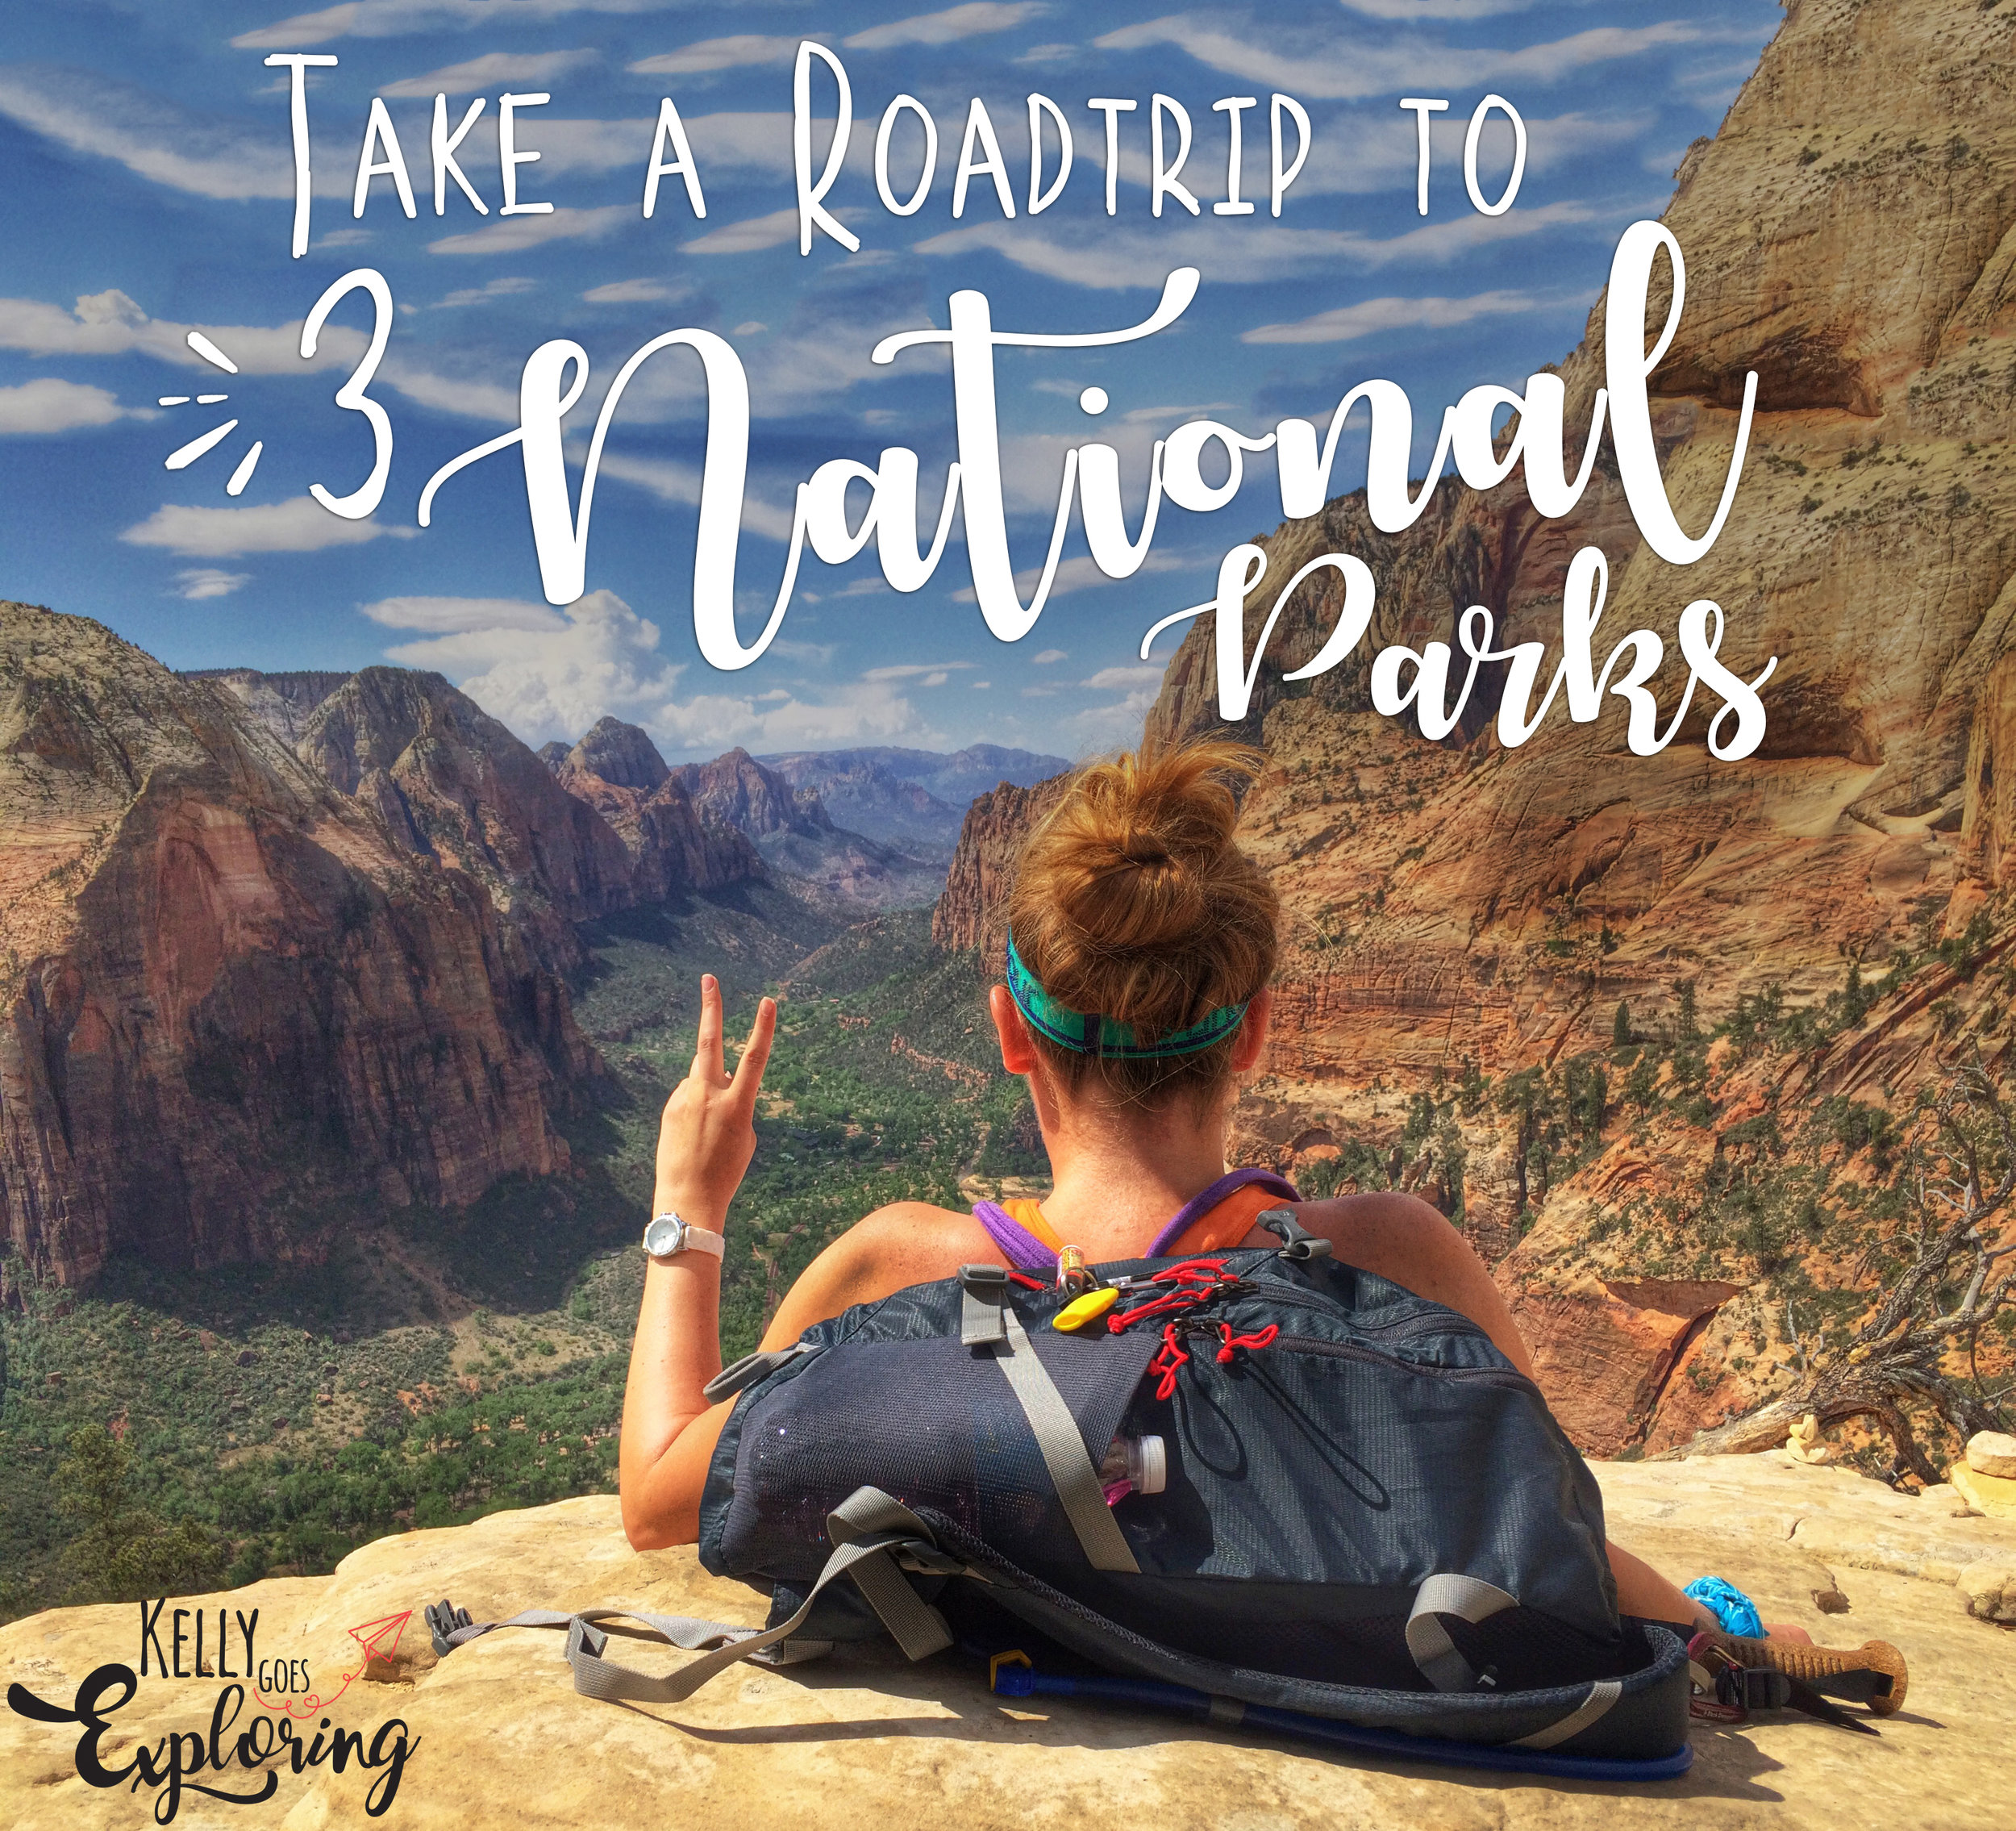 Go Exploring Travel - National Park Roadtrip - Zion, Bryce Canyon and the Grand Canyon